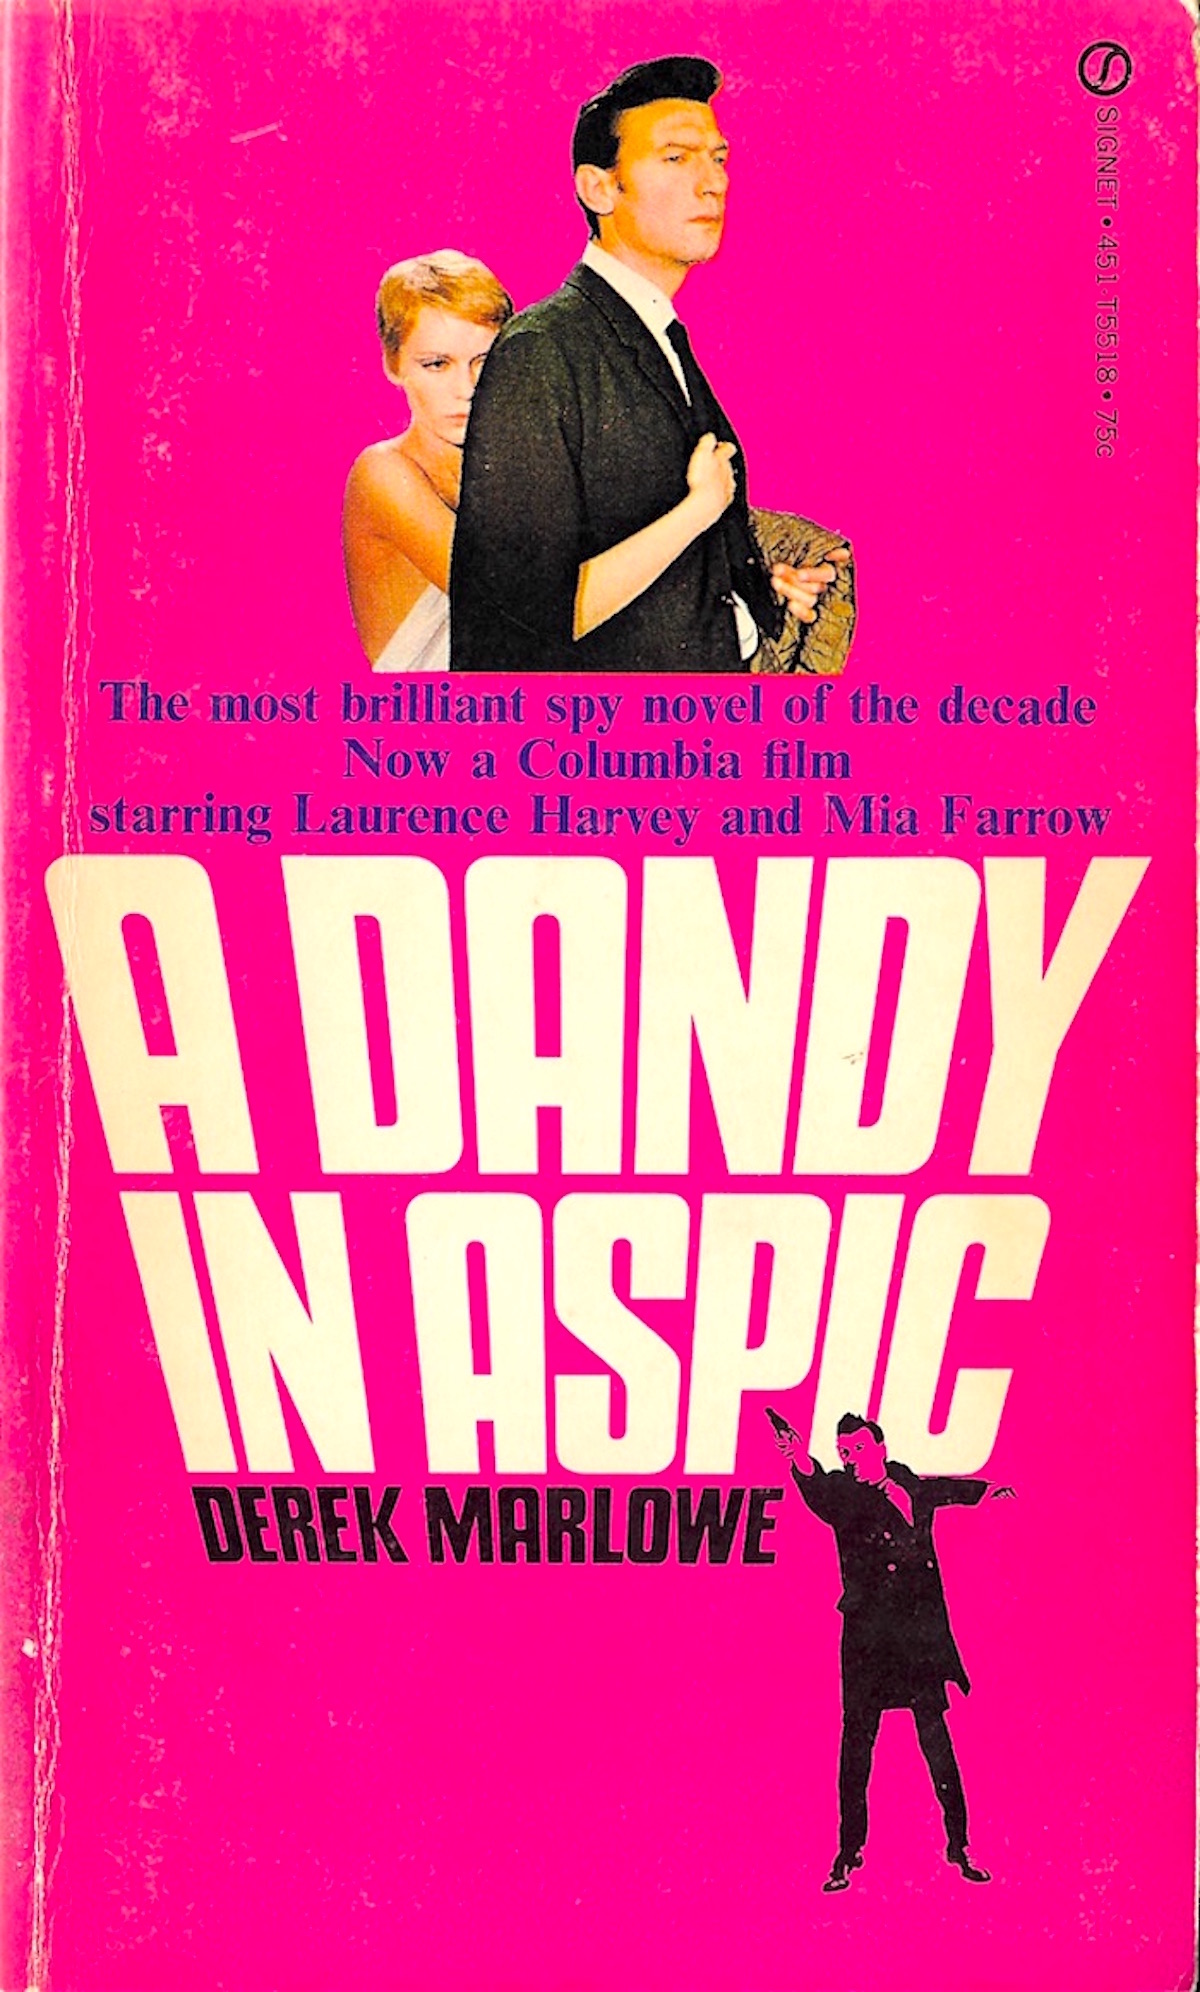 A Dandy in aspic, book, Derek Marlowe